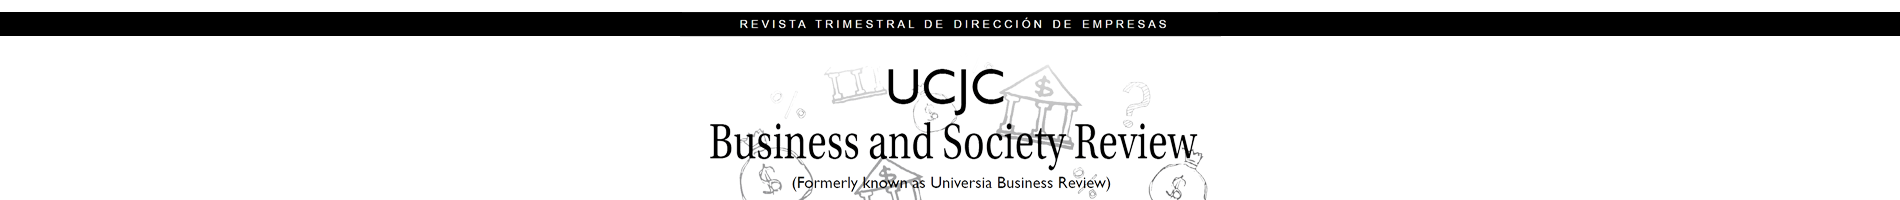 UCJC Business and Society Review (formerly known as Universia Business Review)